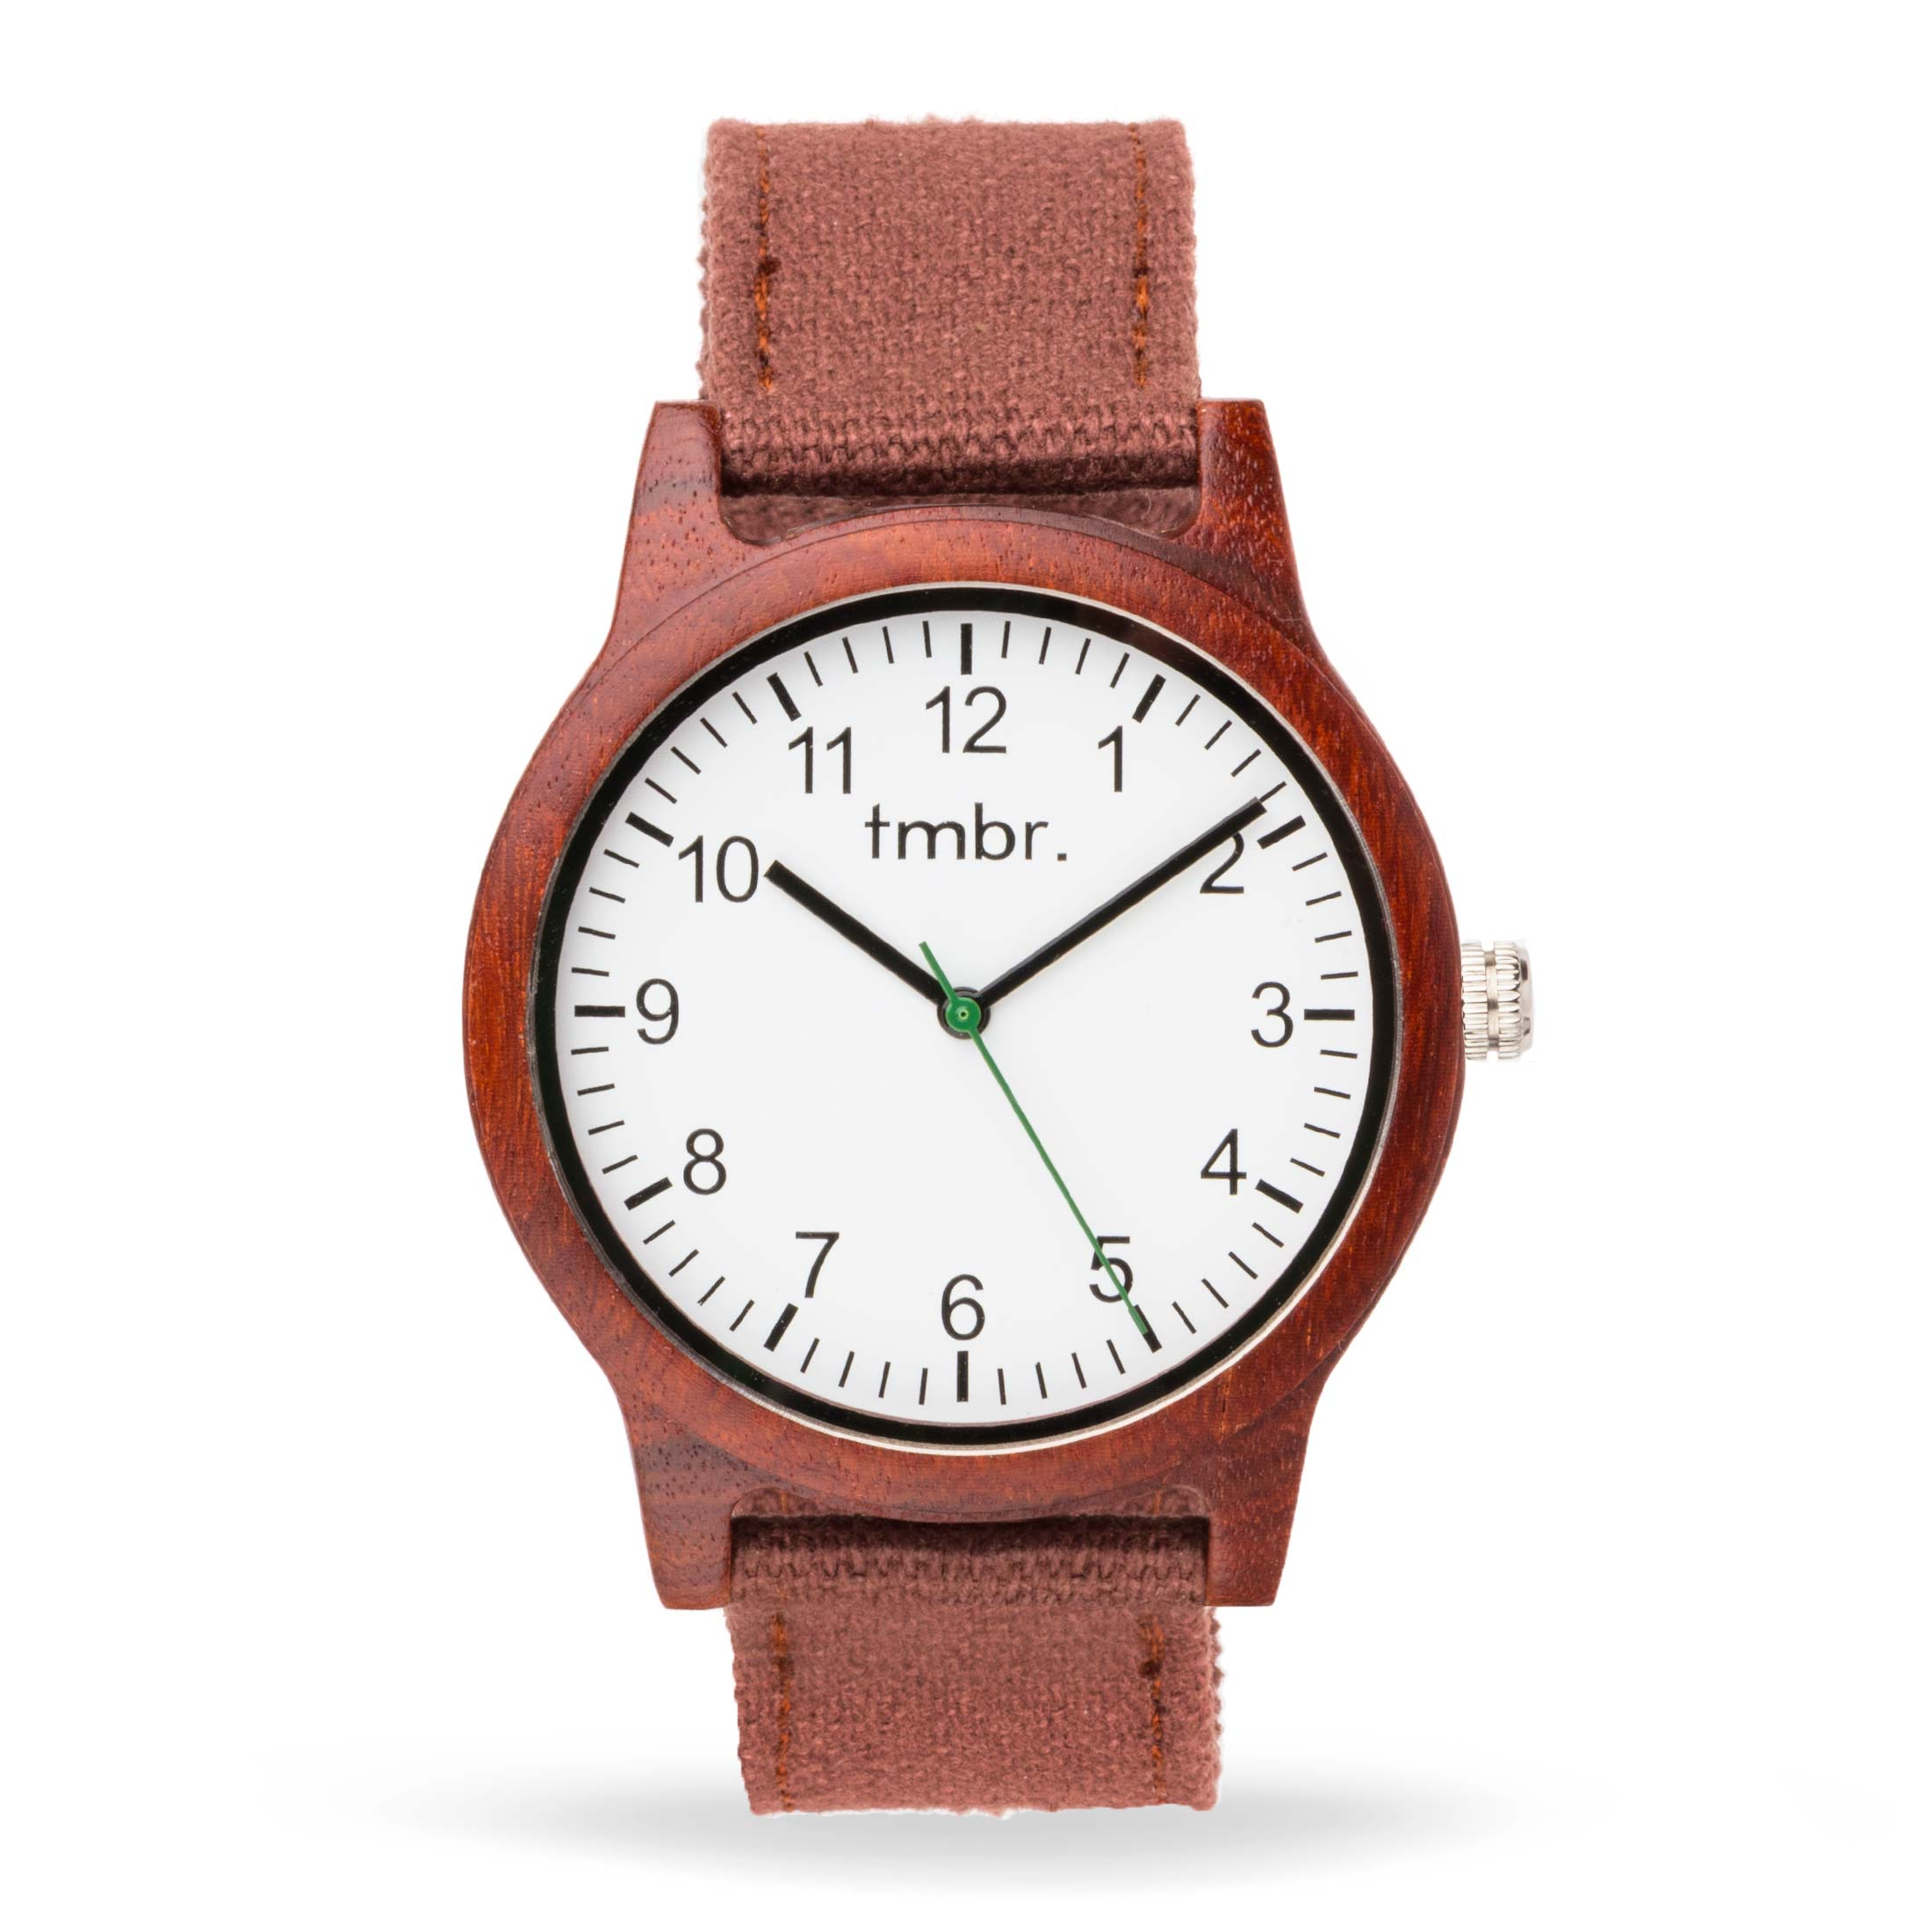 Engraved Tmbr Burly Wood Watch With Leather Strap